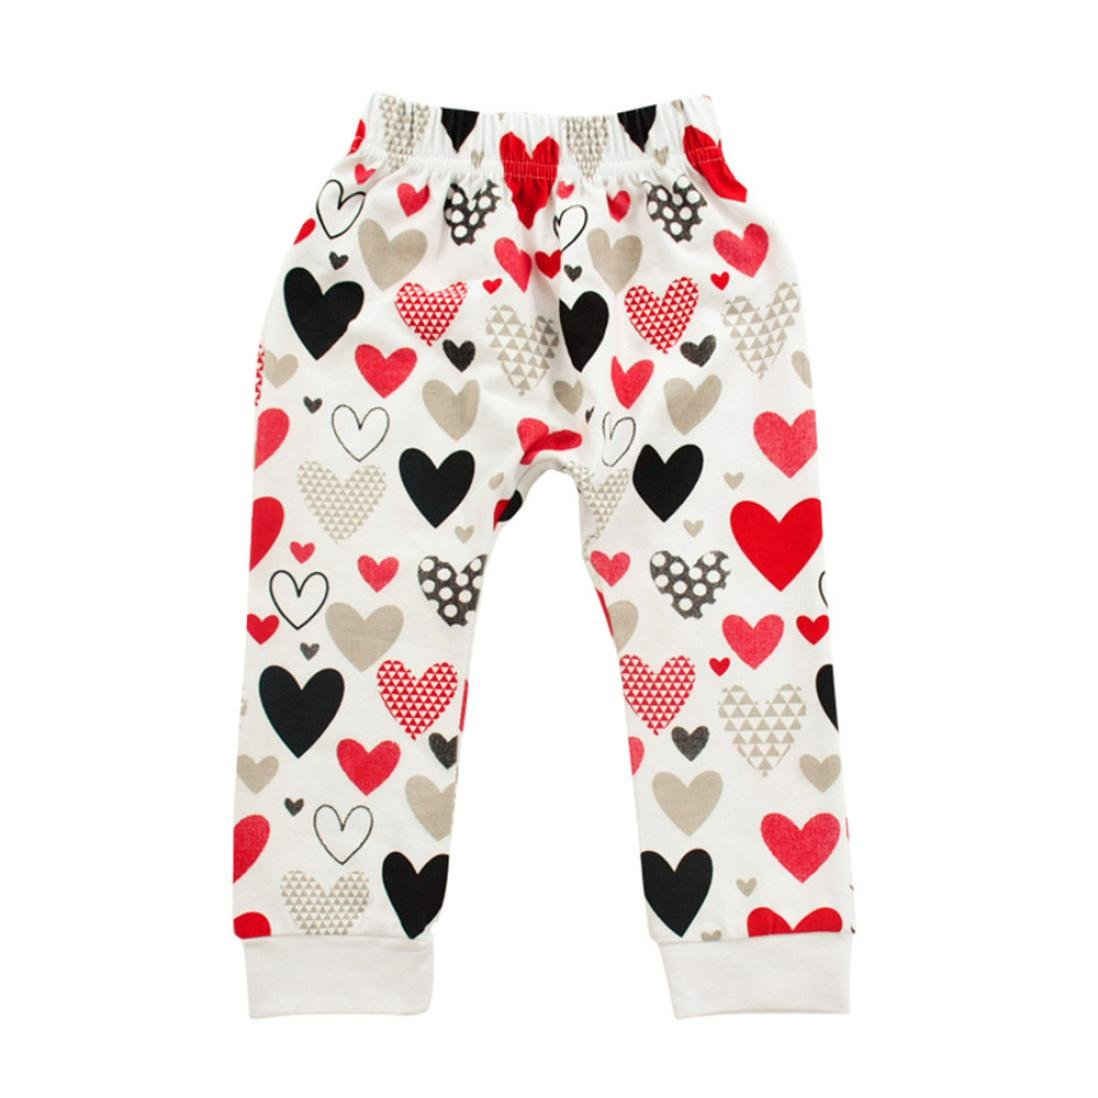 Iuhan Toddler Baby Girls Outfit Set I PAPA MAMA Letter Tops Heart Pants Clothing